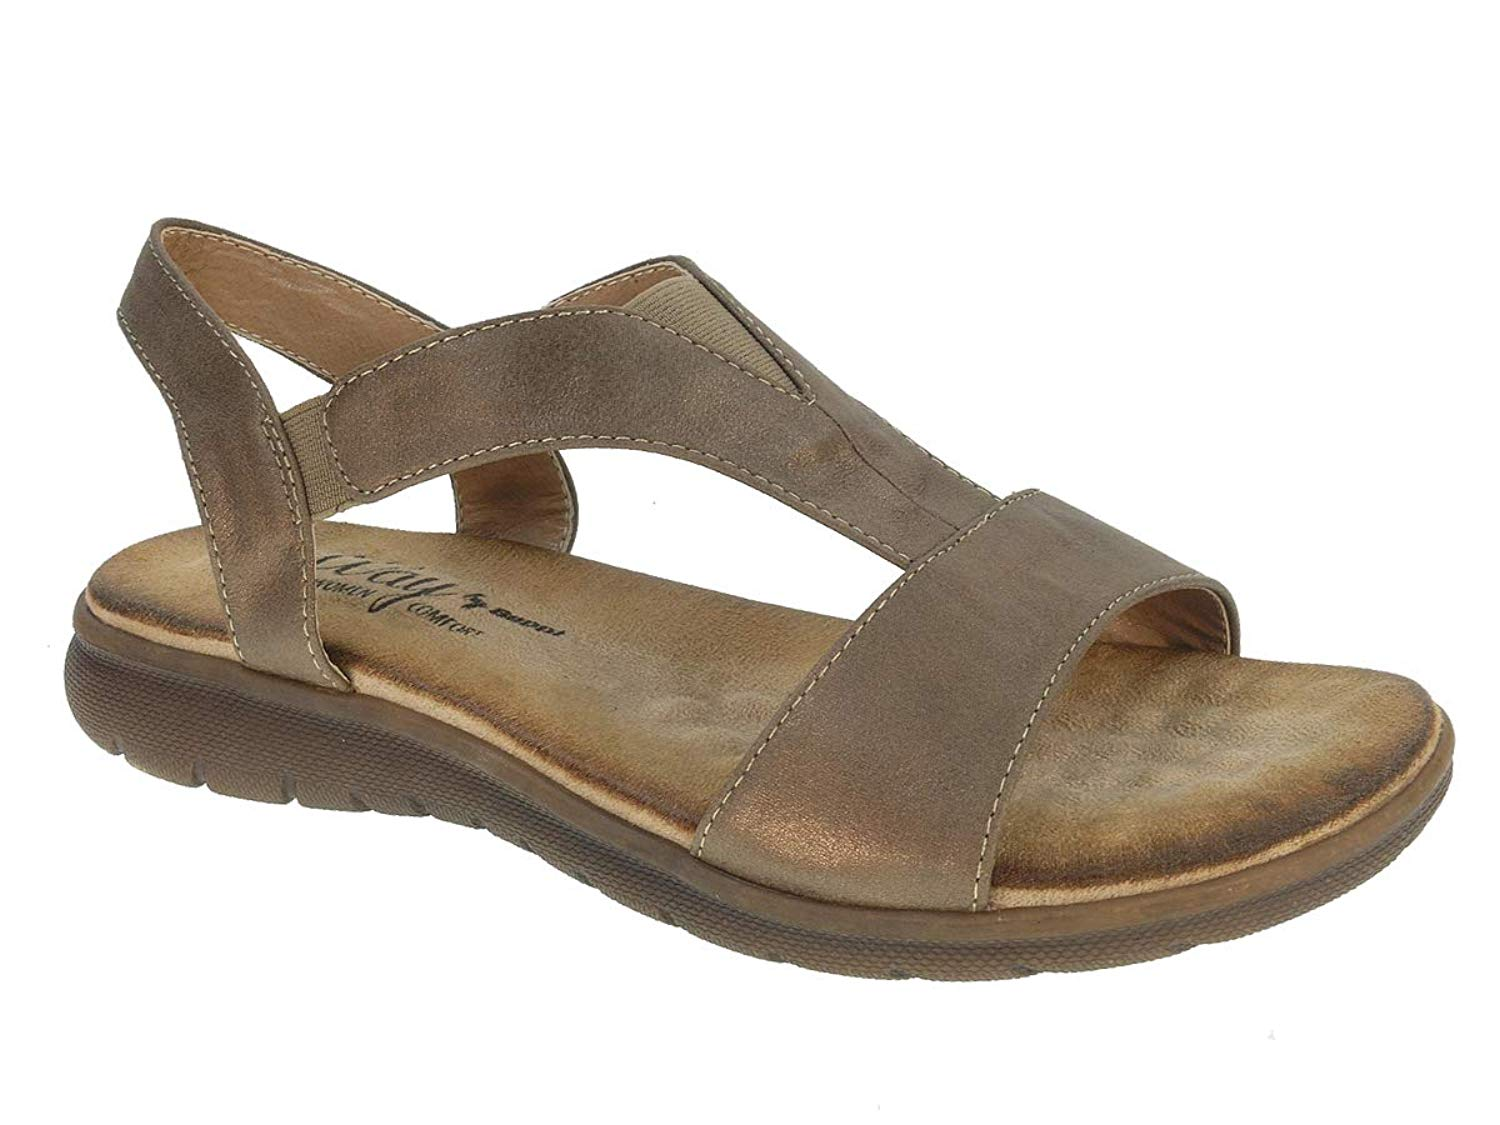 d53af148418 Get Quotations · Women s Open Toe Sandal With Cross Straps For Casual Wear